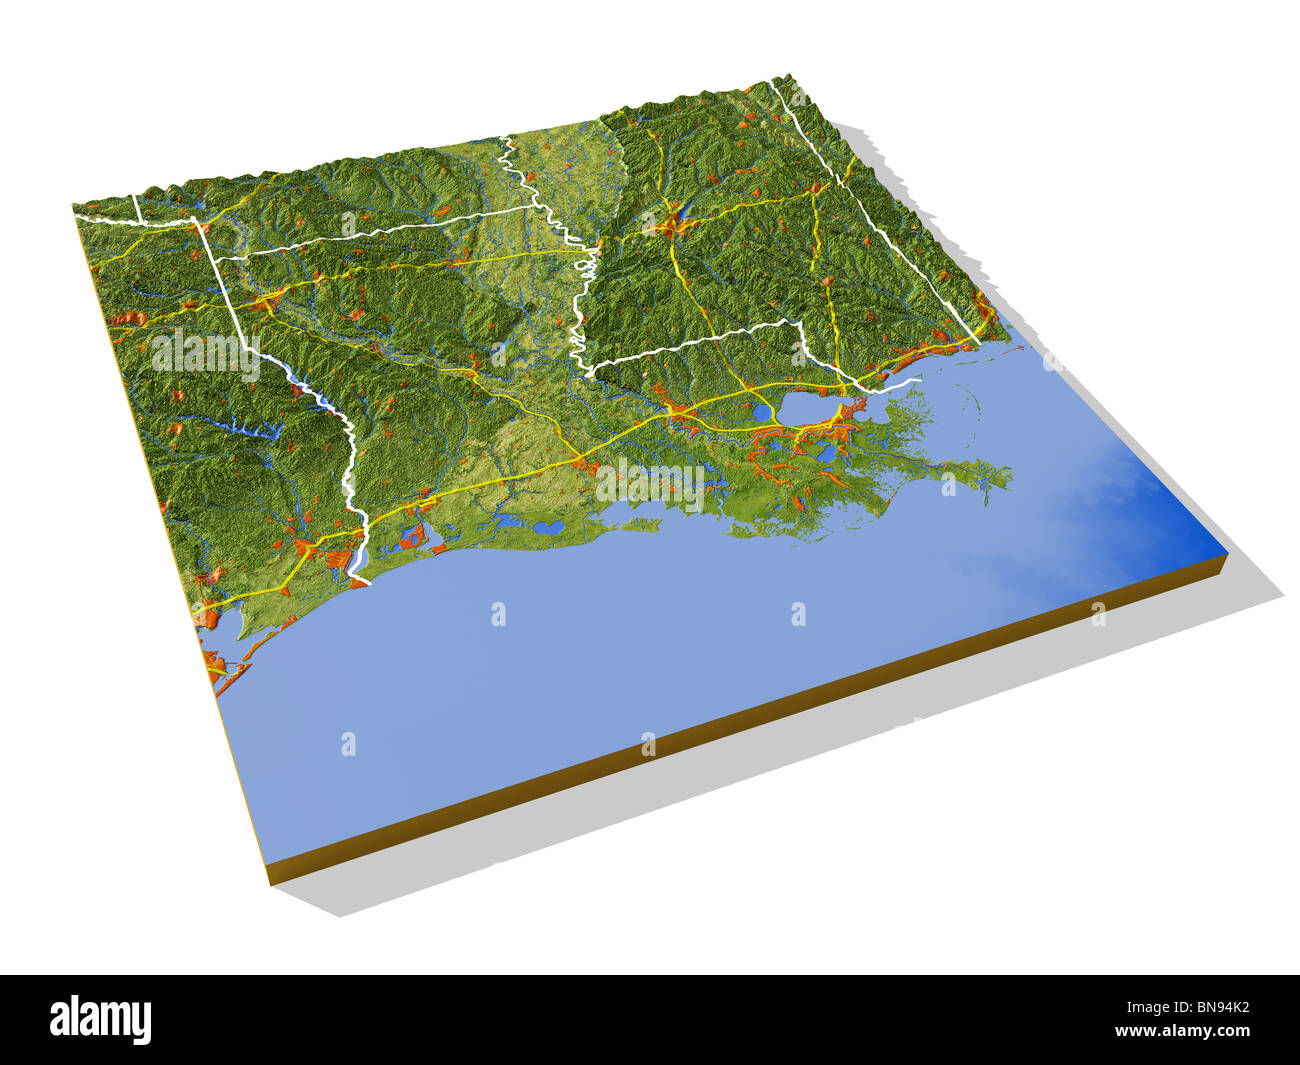 Louisiana 3D relief map with urban areas interstate highways and